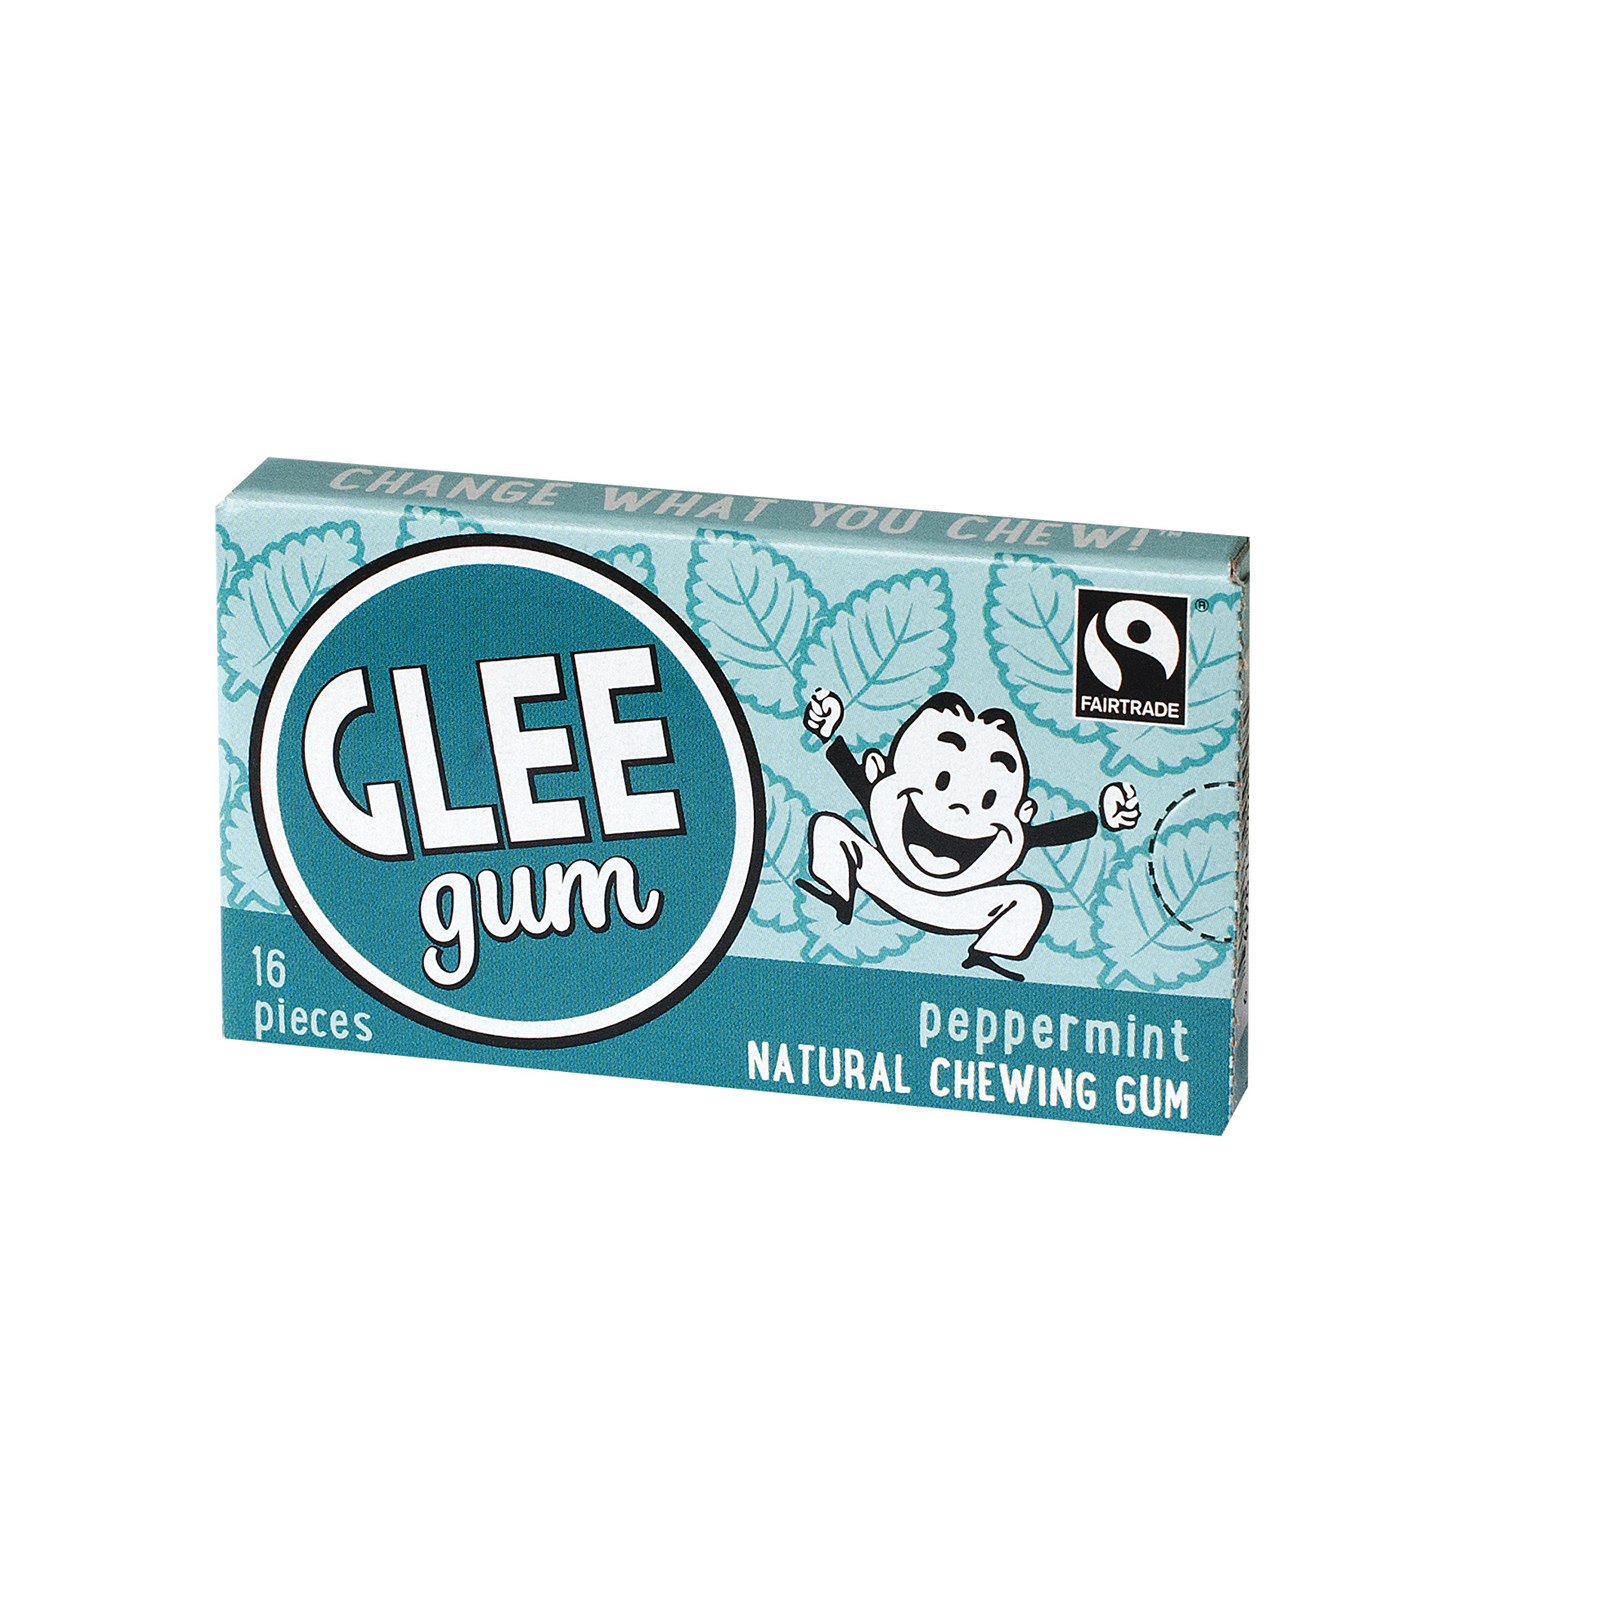 Glee Gum Chewing Gum - Peppermint - Case of 12 - 16 Pieces